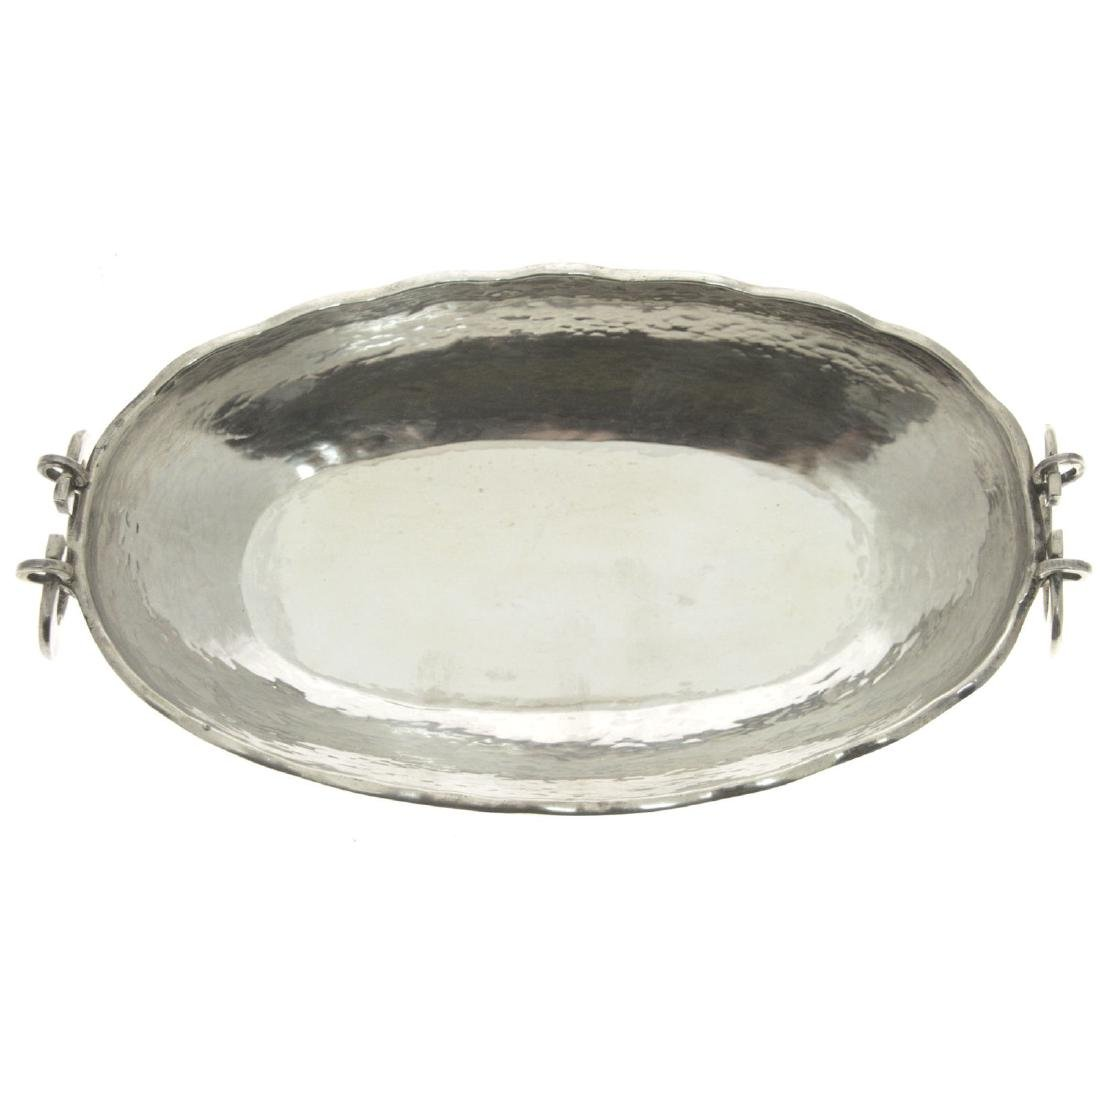 Sterling Silver Two Handled Bowl.